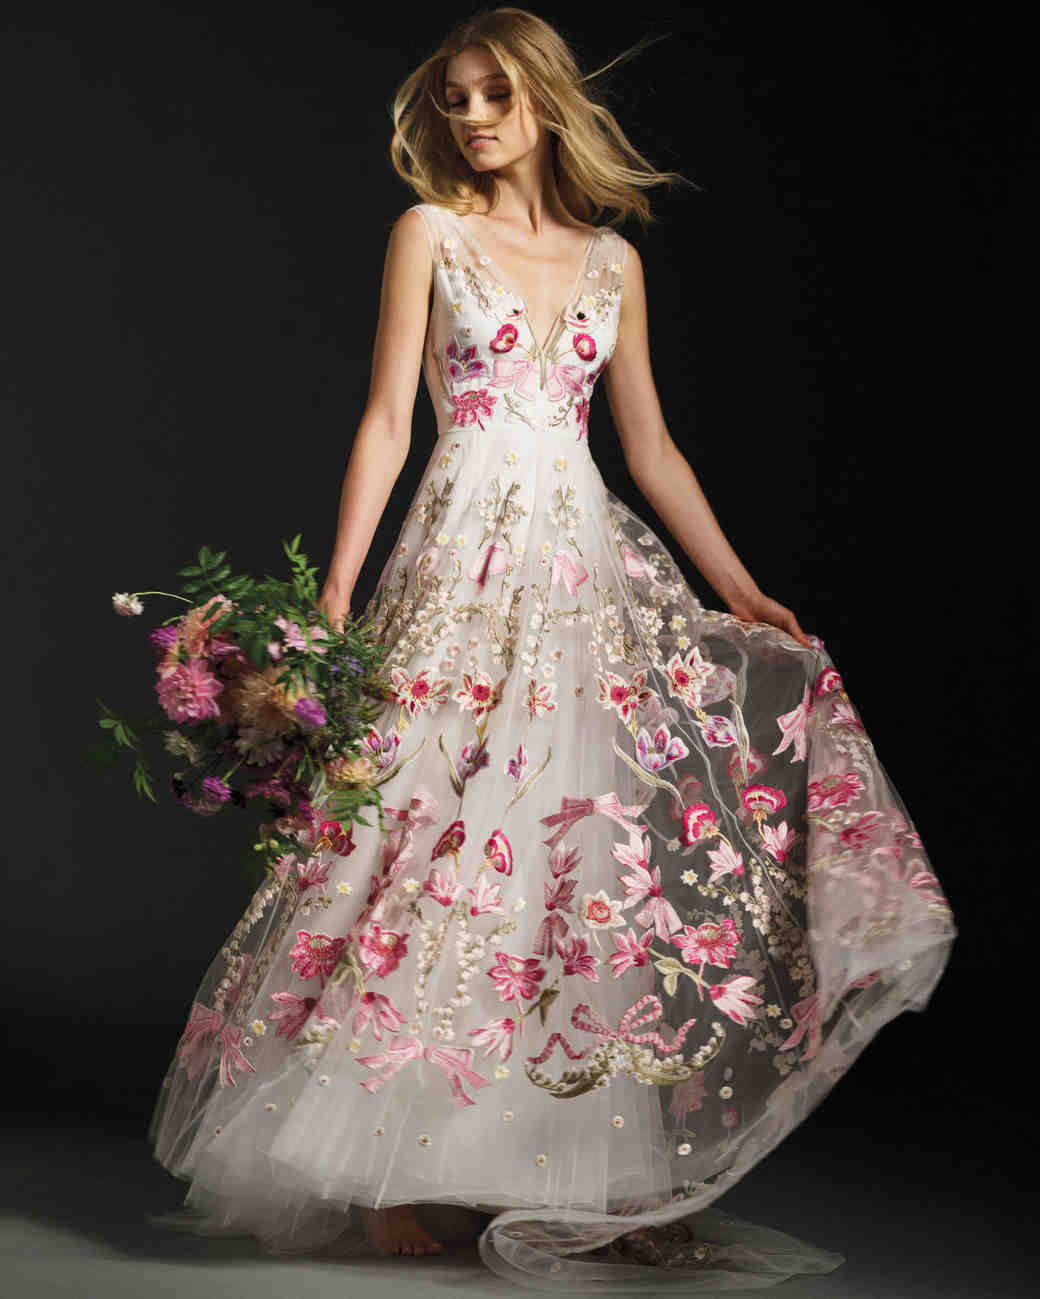 Fall color wedding dresses pictures